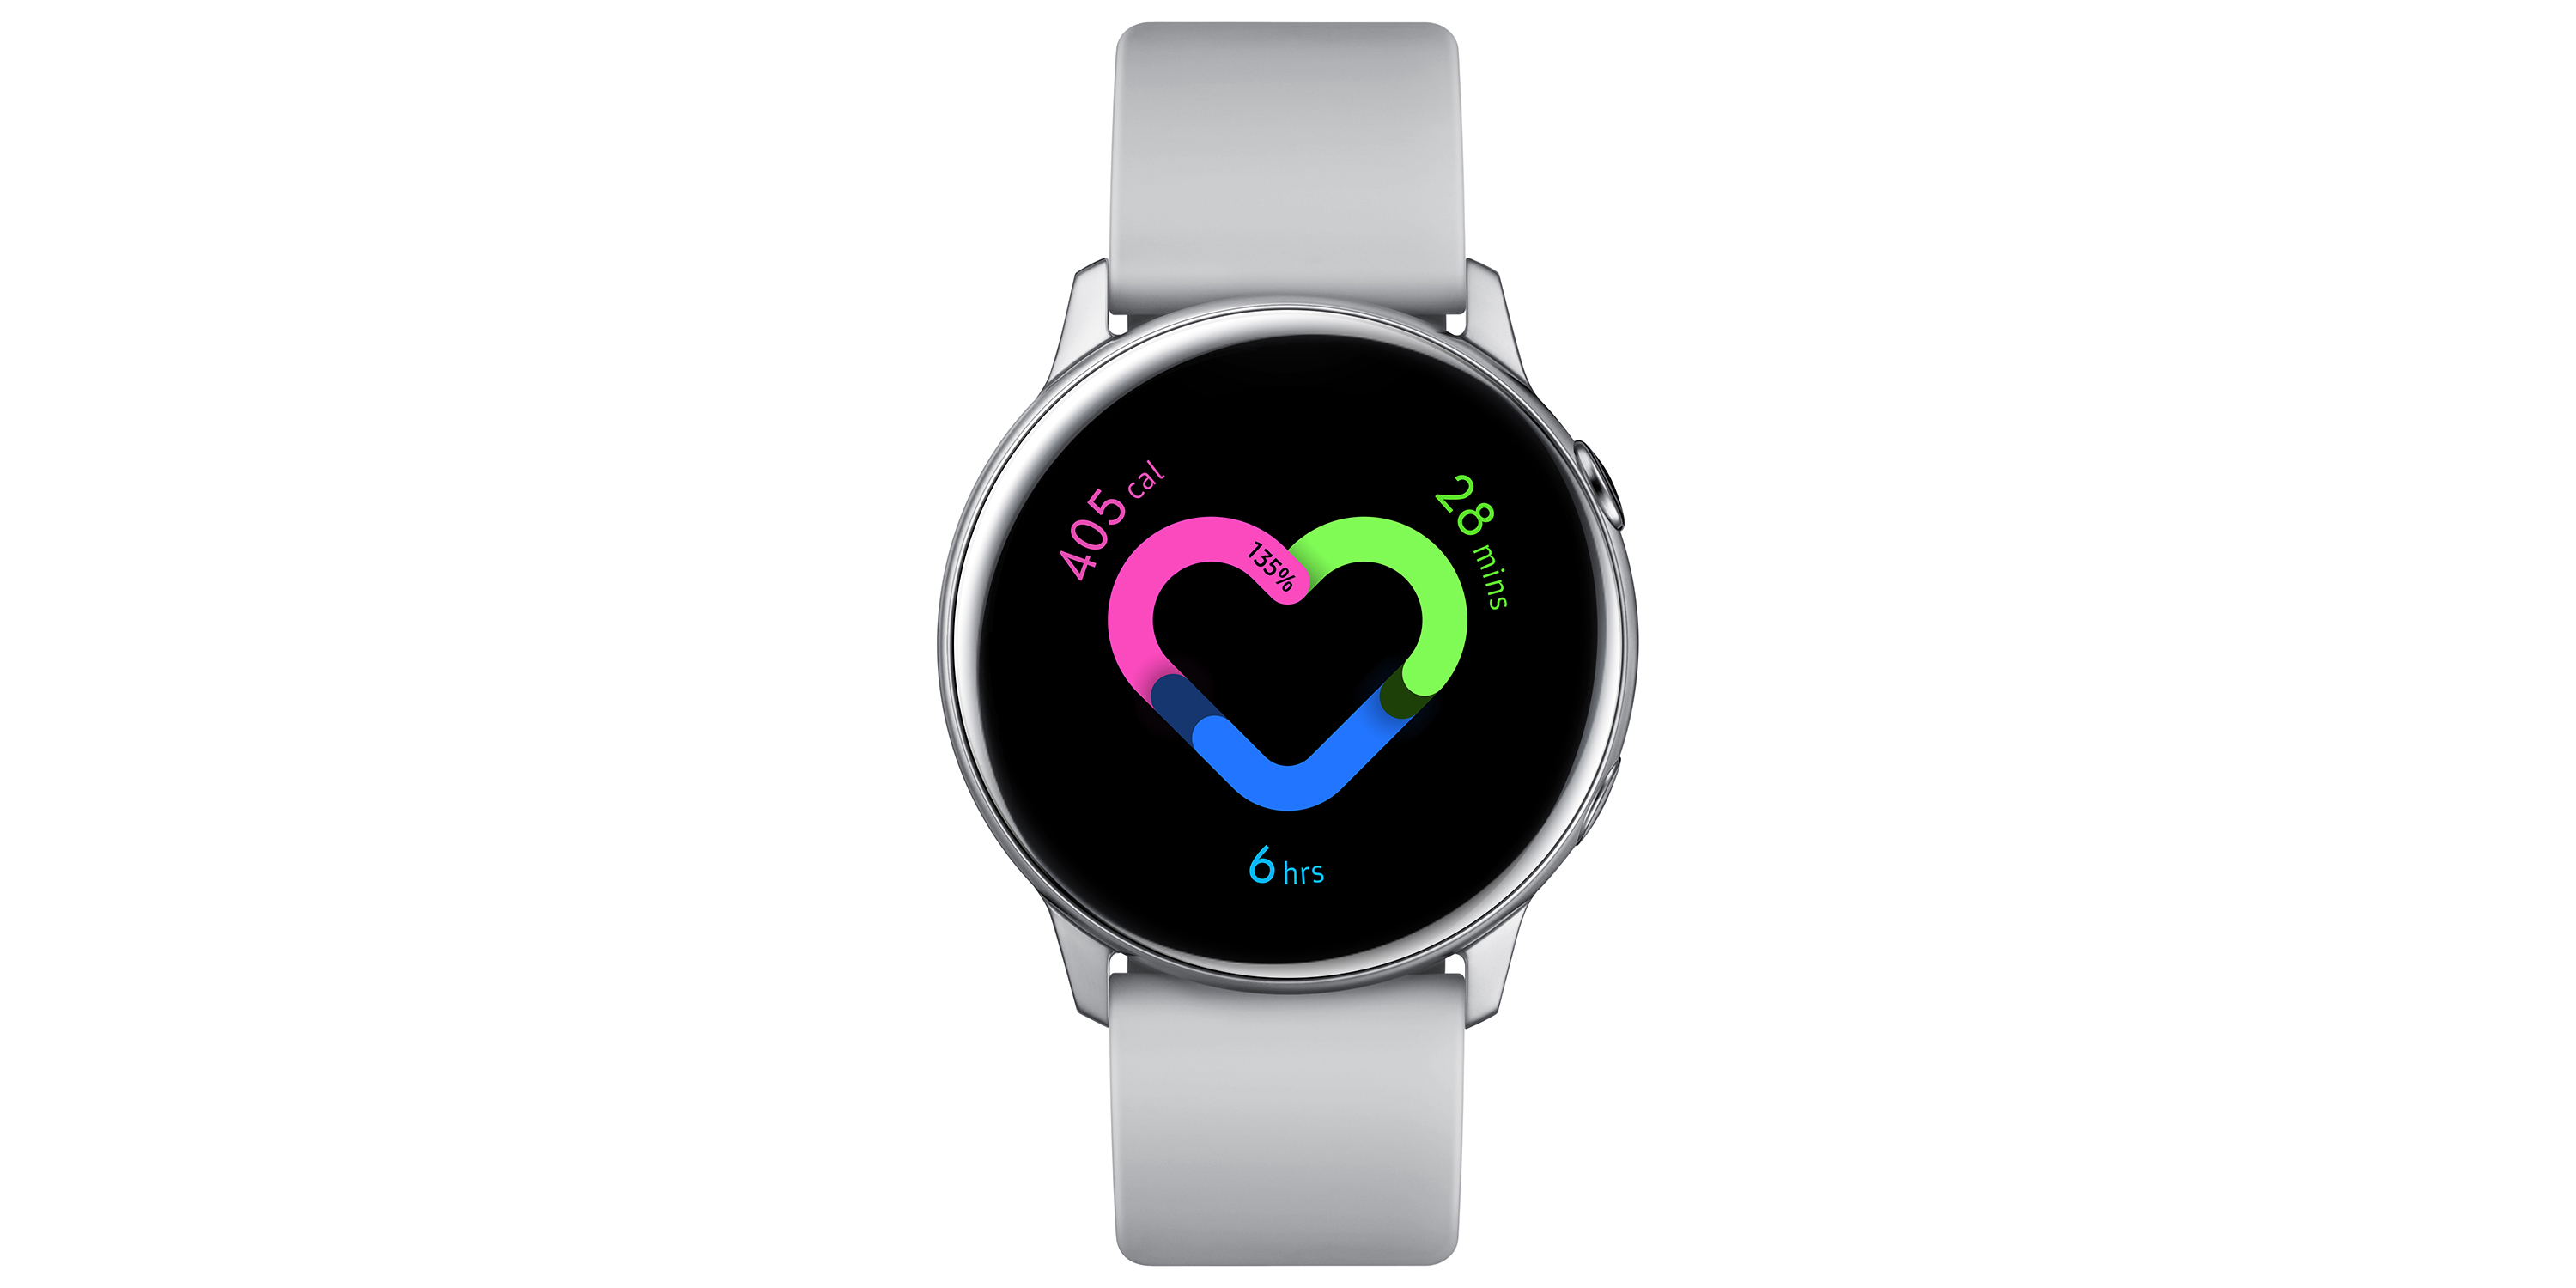 Samsung Galaxy Watch Active goes official w/ no rotating bezel, blood pressure monitoring, $200